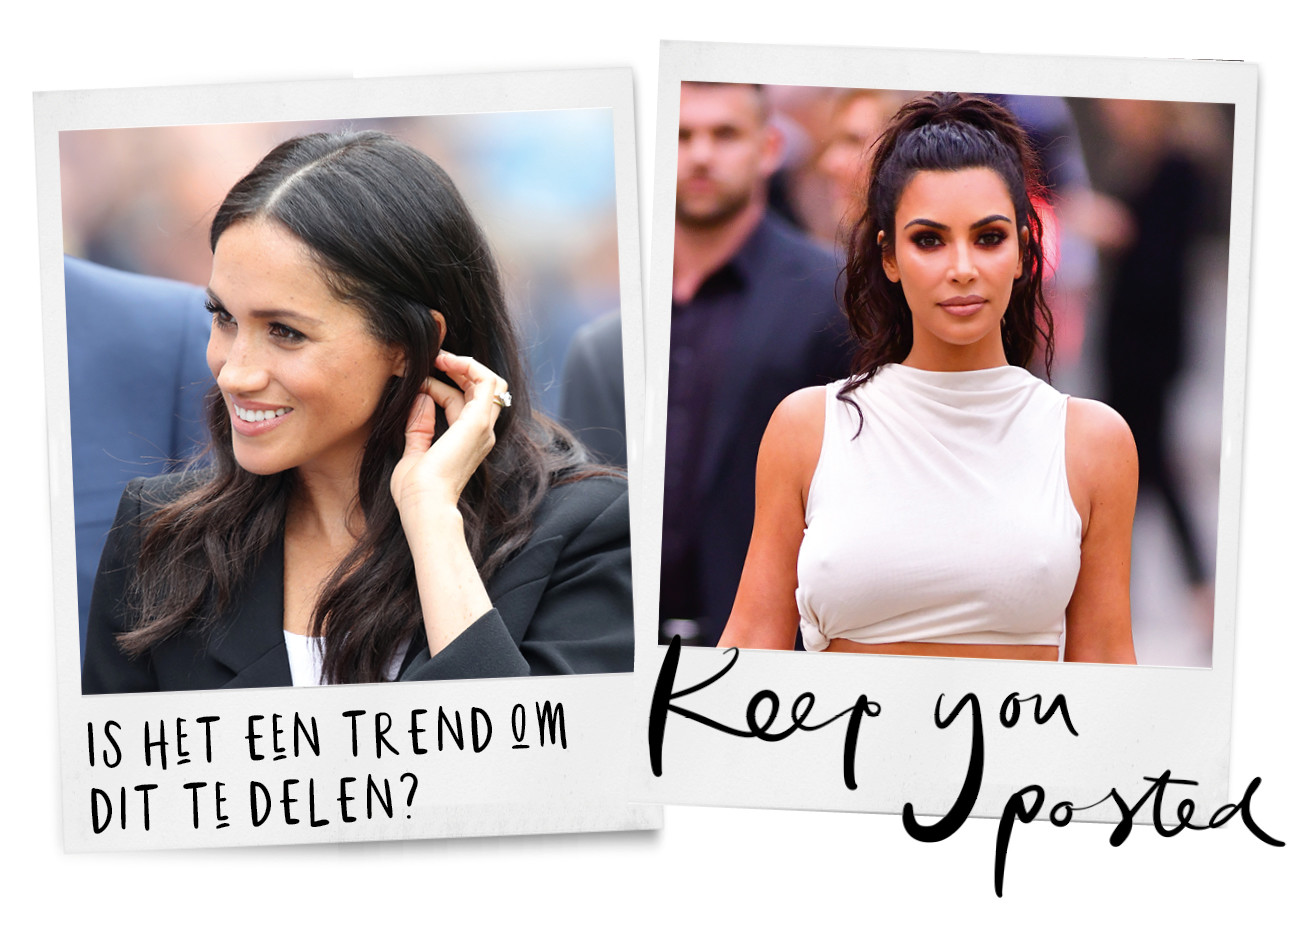 meghan markle lachend in zwarte blazer, is het een trend om dit te delen?, kim kardashian in witte outfit, keep you posted